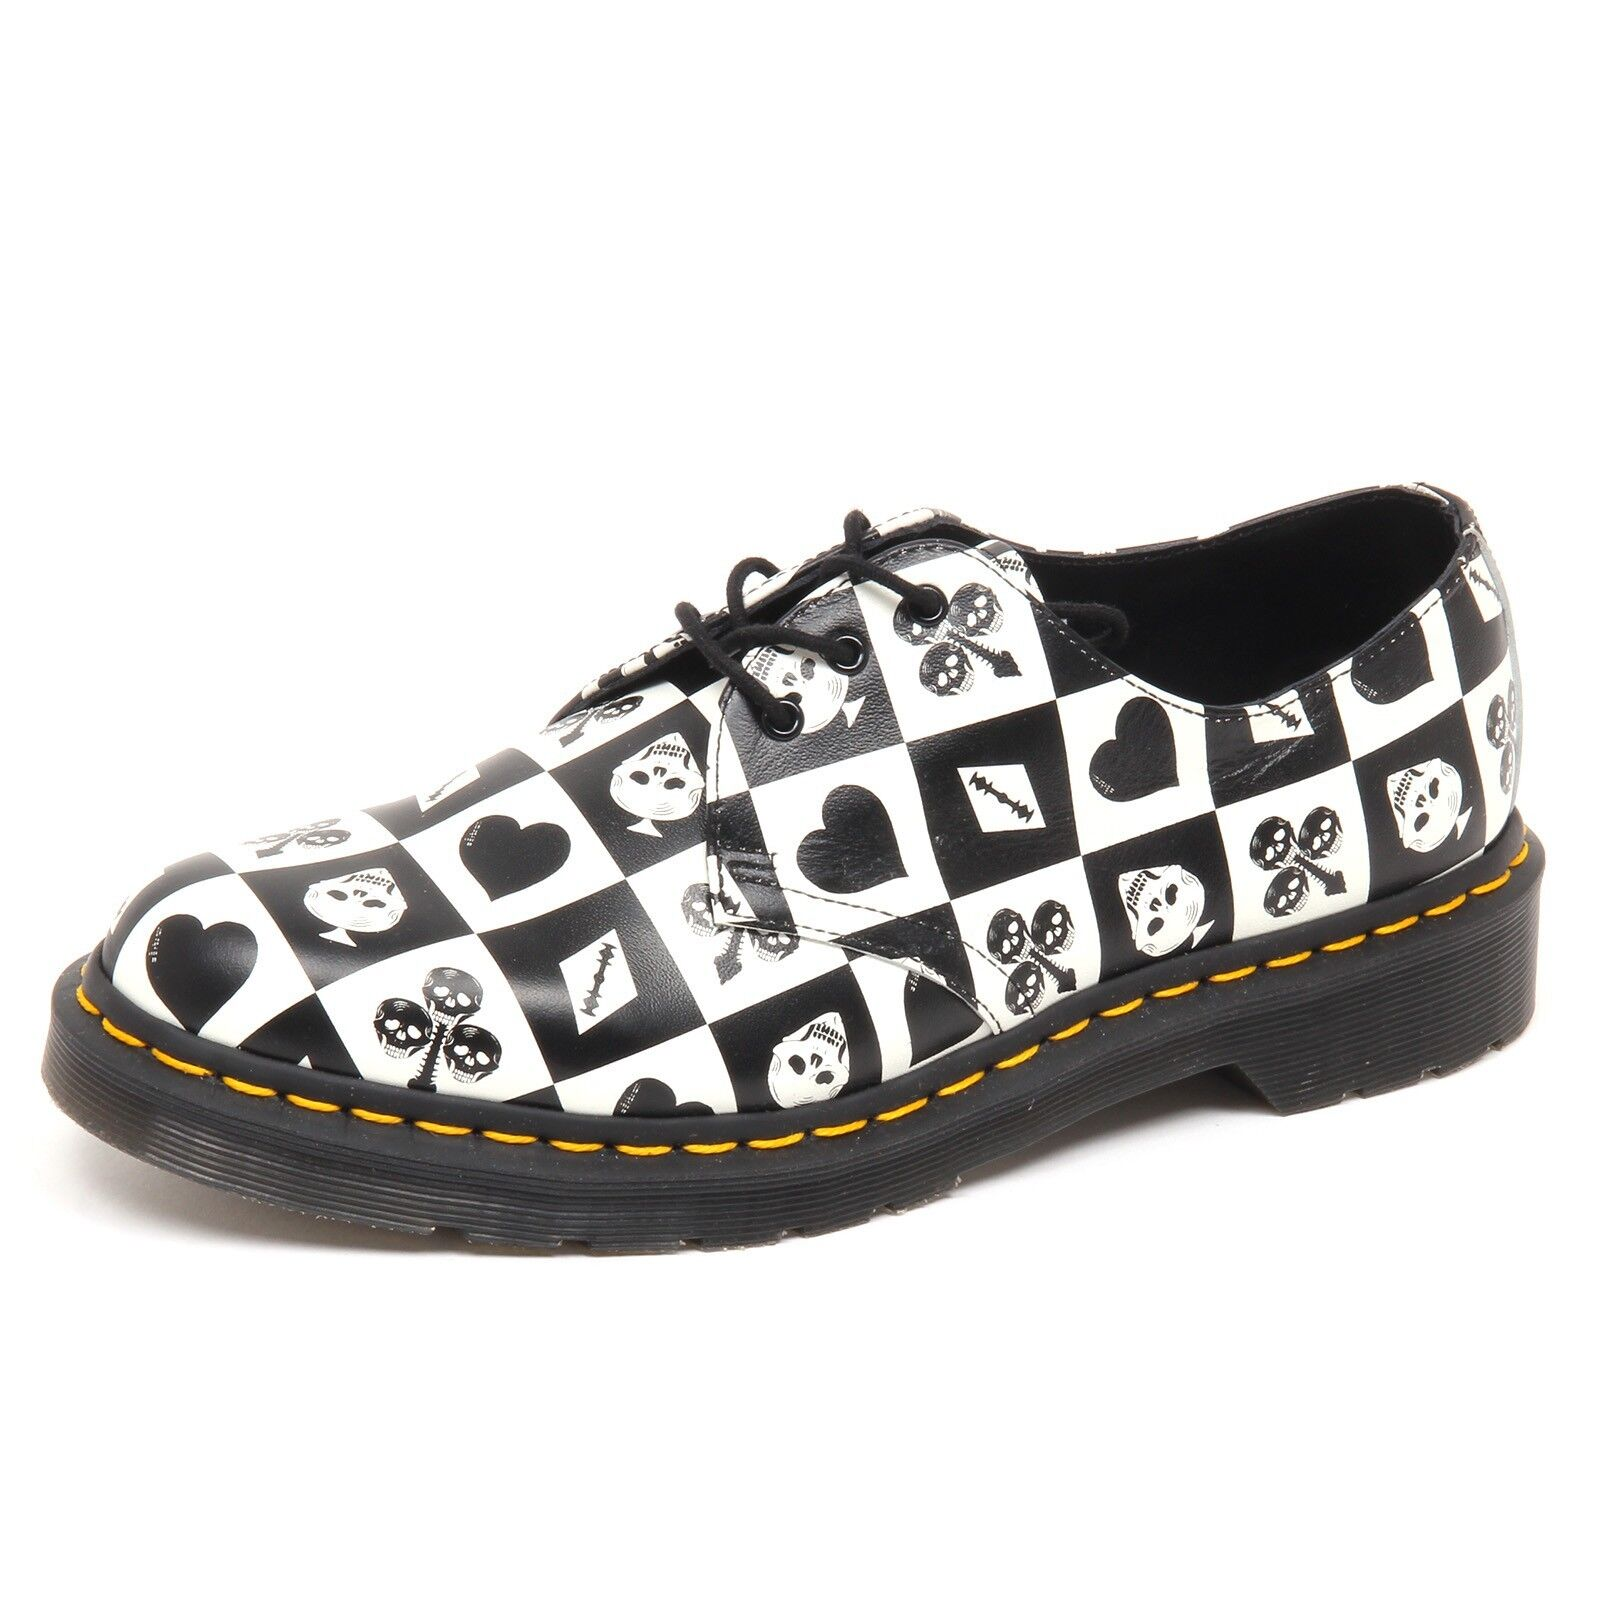 D8248 (SAMPLE (SAMPLE D8248 NOT FOR SALE WITHOUT BOX) scarpa   DR. MARTENS Chaussure  Femme 6c5cb4